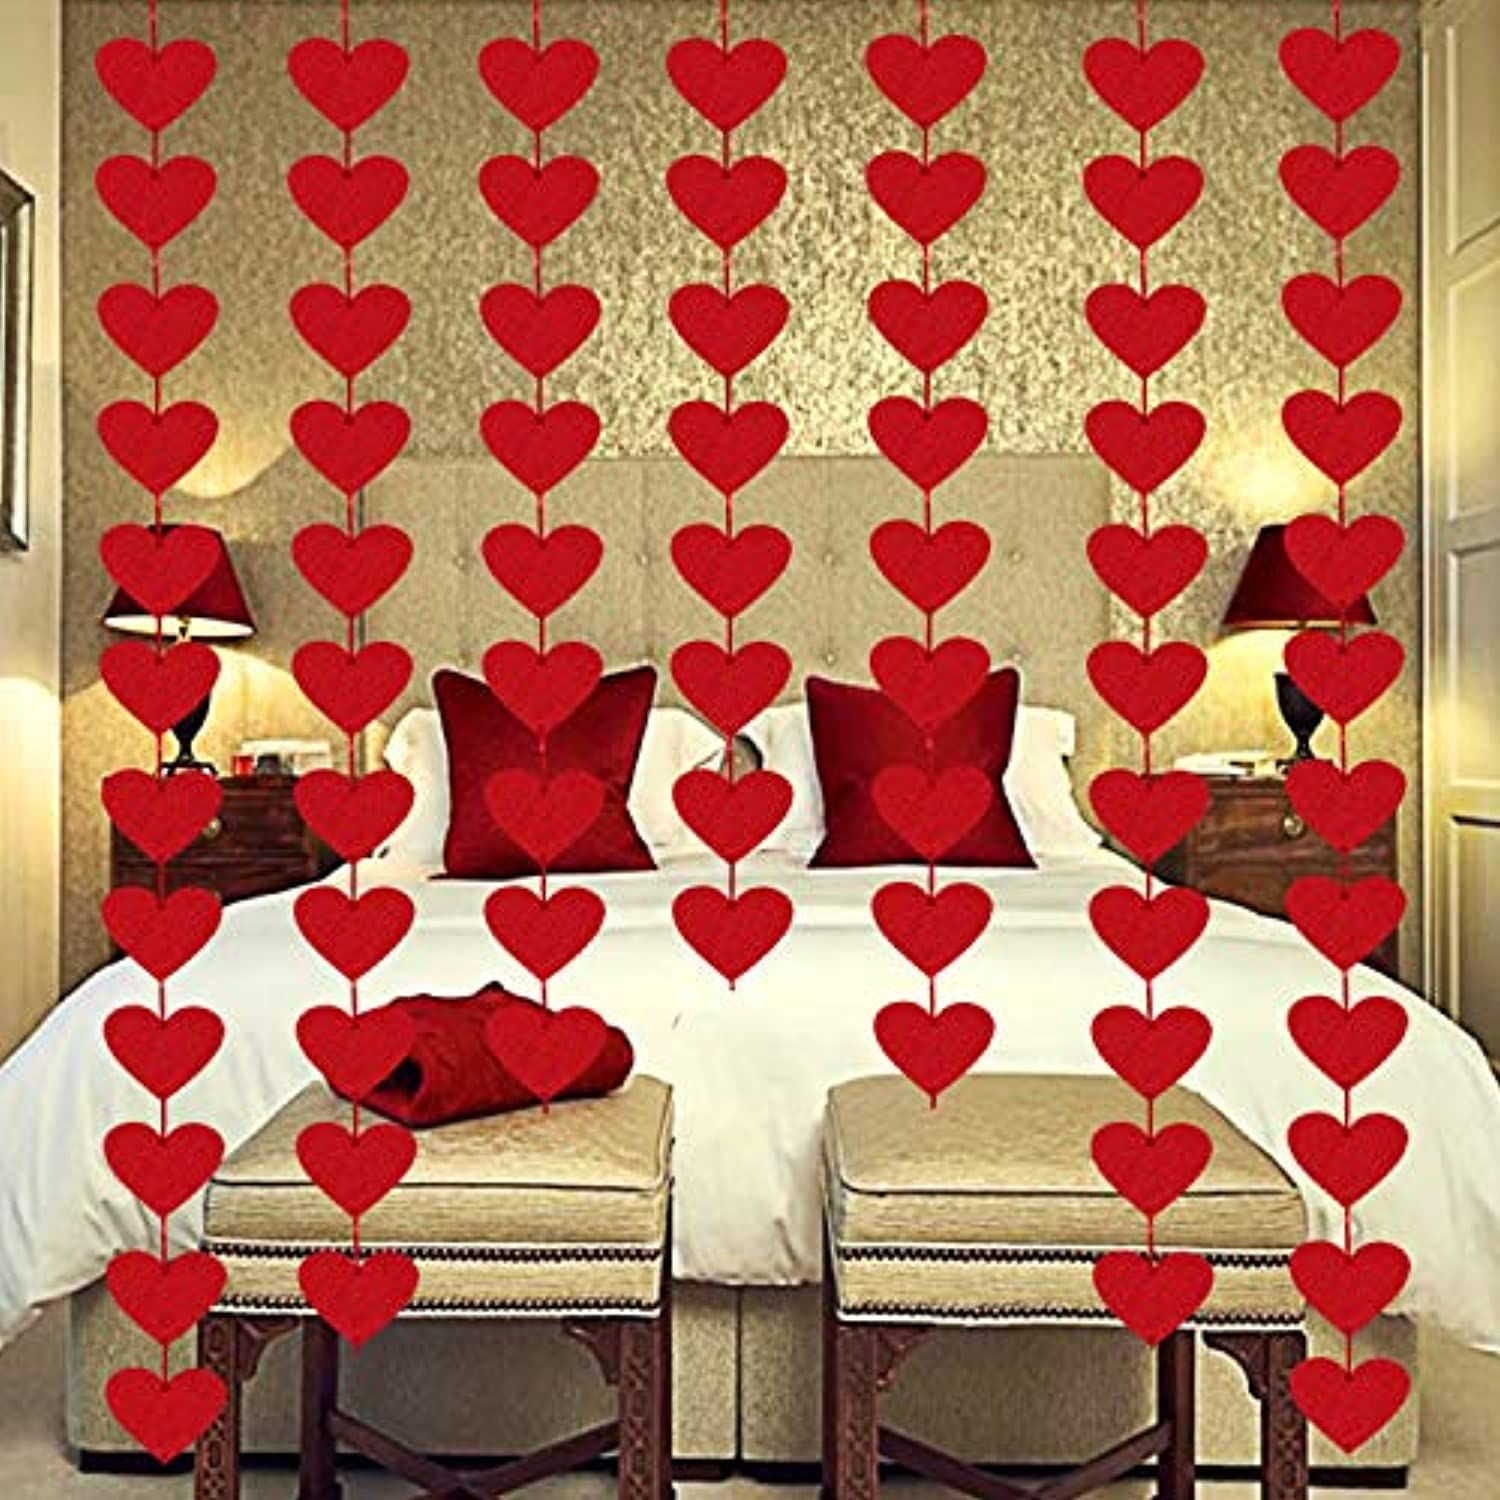 Perfect Valentine's Day Decorations - Our felt heart hanging garlands will be perfect choice to decorate your home, office room, bedroom